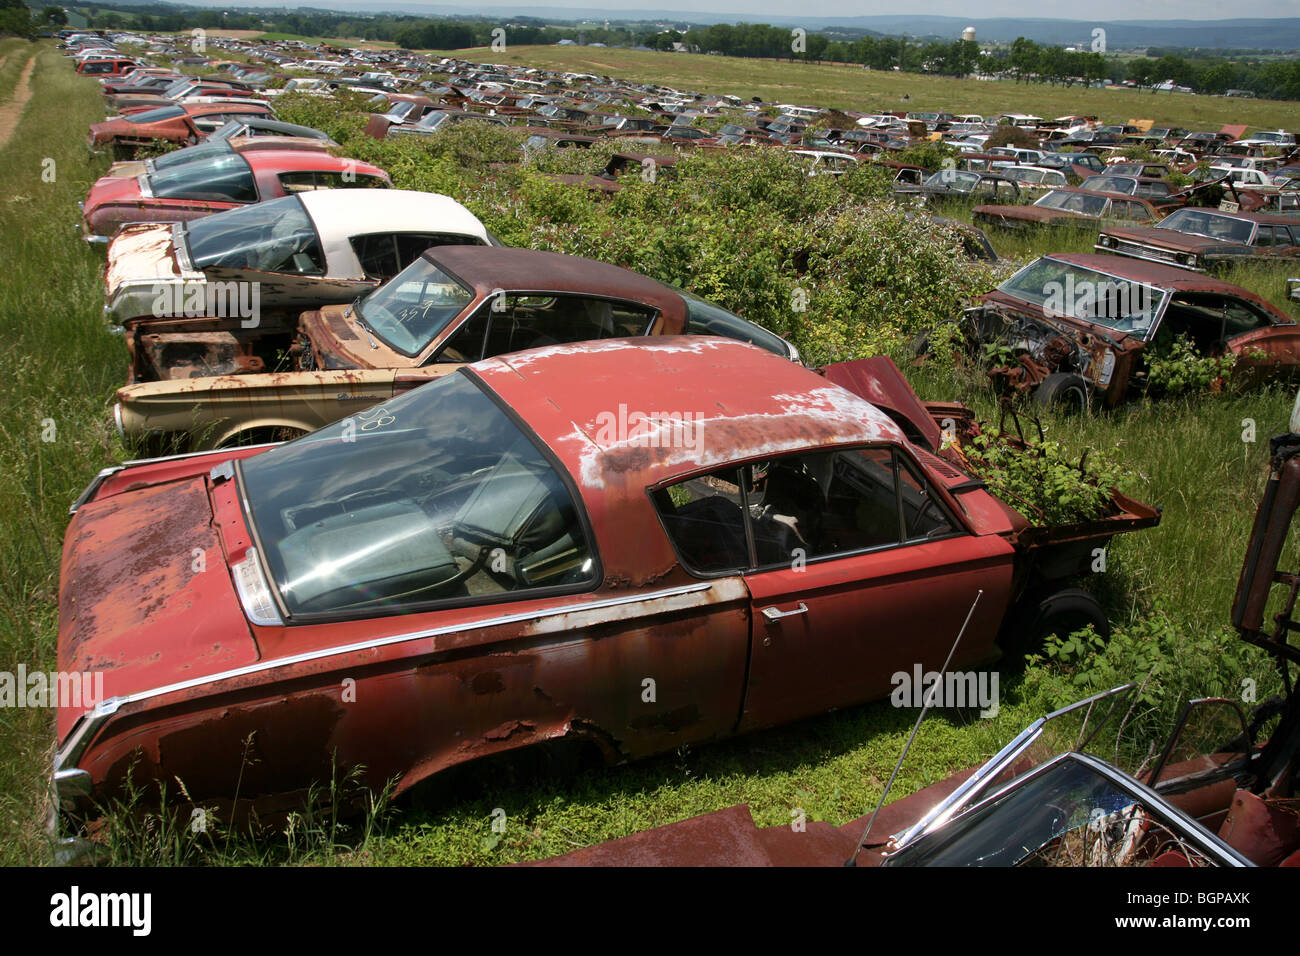 Cars Junk Yards Stock Photos & Cars Junk Yards Stock Images - Alamy